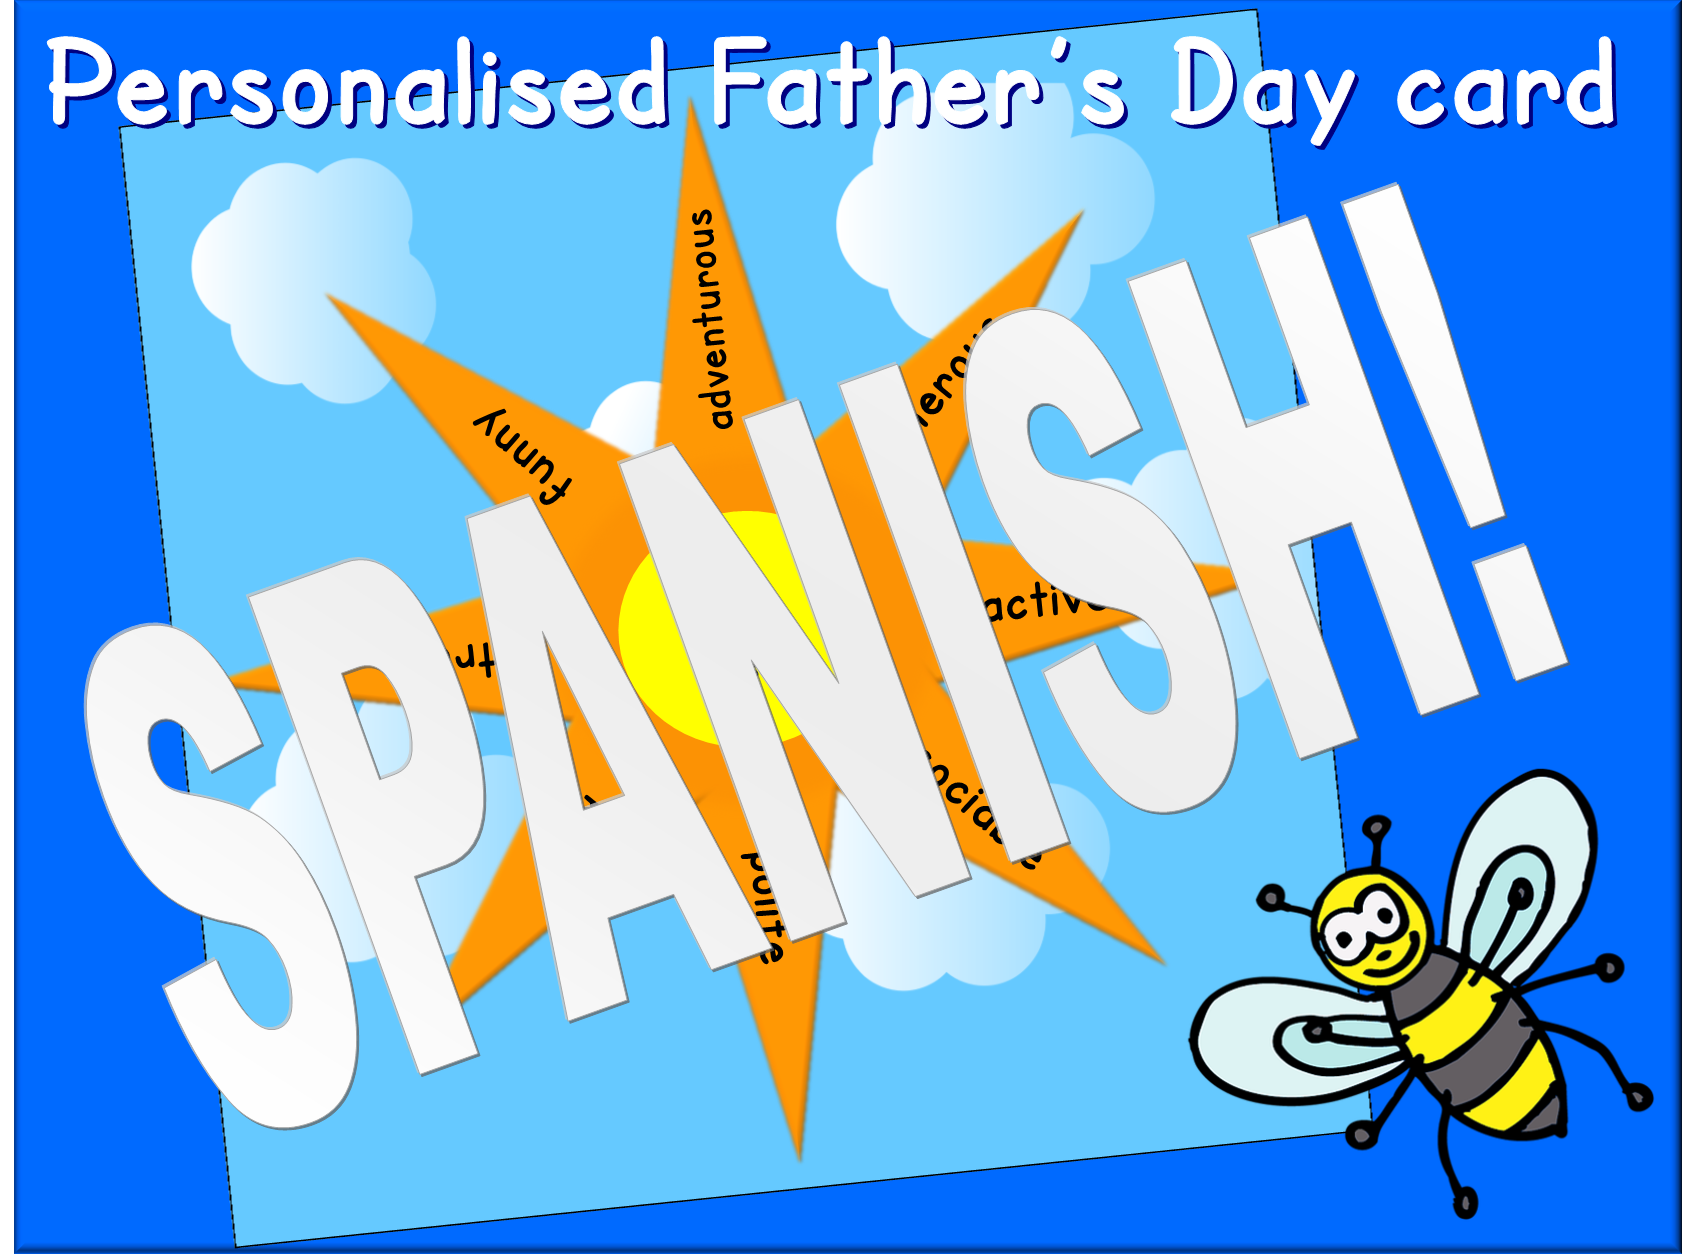 Spanish personalised Father's Day card - adjectives and dictionary skills activity